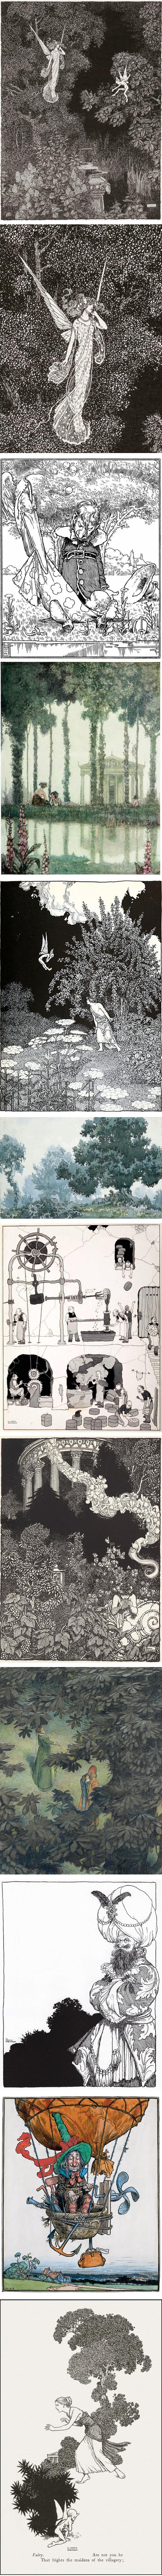 W. Heath Robinson, illustrations, cartoons, contraptions, watercolors